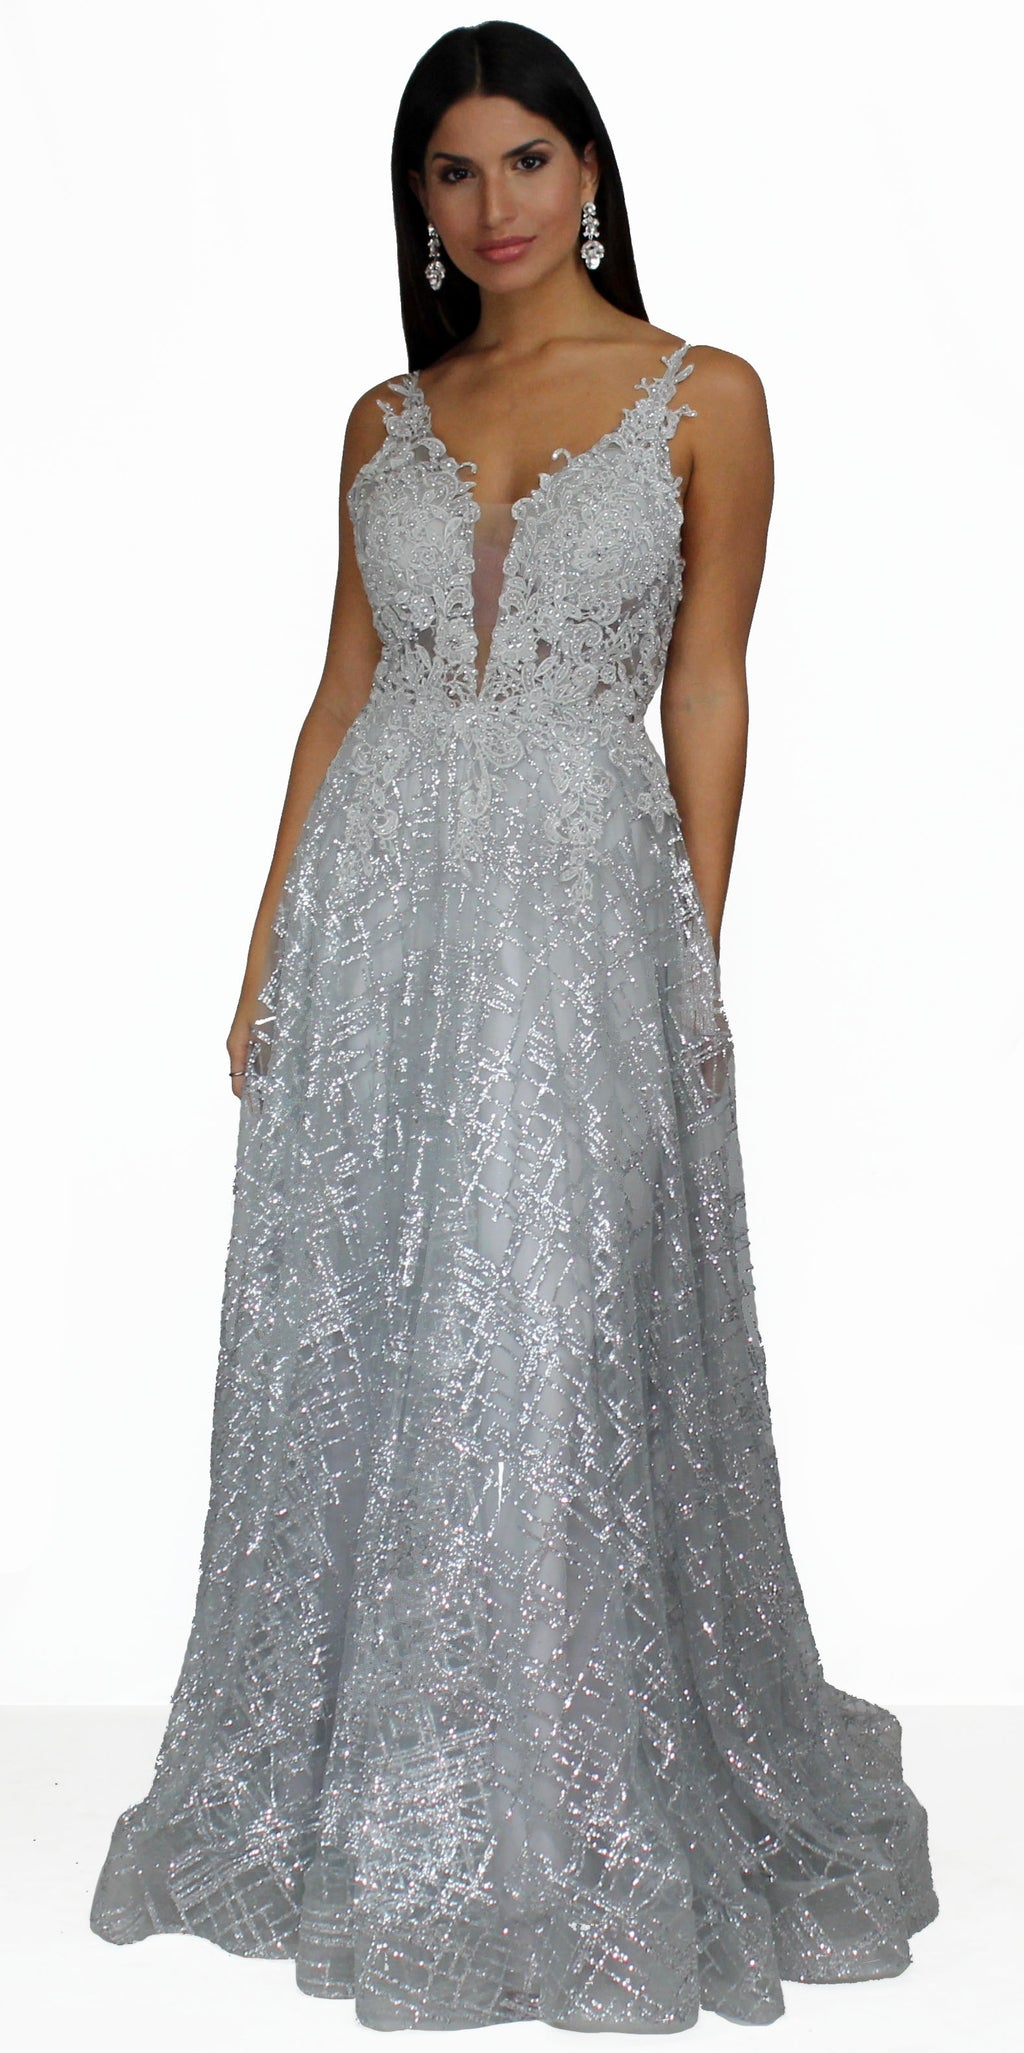 Romantic Moment and Glitter Silver Formal Gown